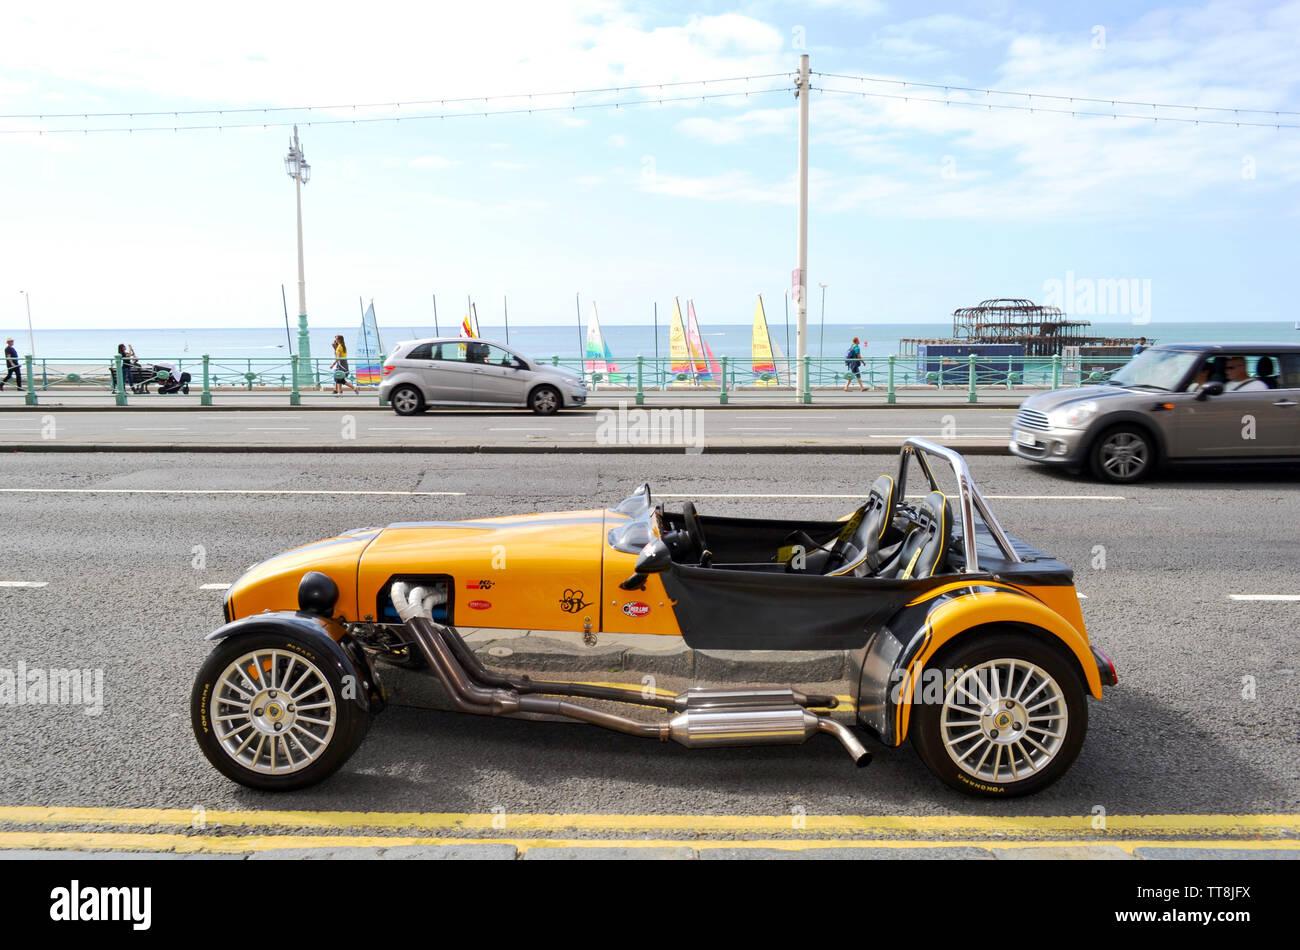 Brighton, UK - August 14, 2016: Beautiful yellow vintage Lotus Cobra car parked in the Brighton beach avenue with rests of Brighton's old West Pier. Stock Photo